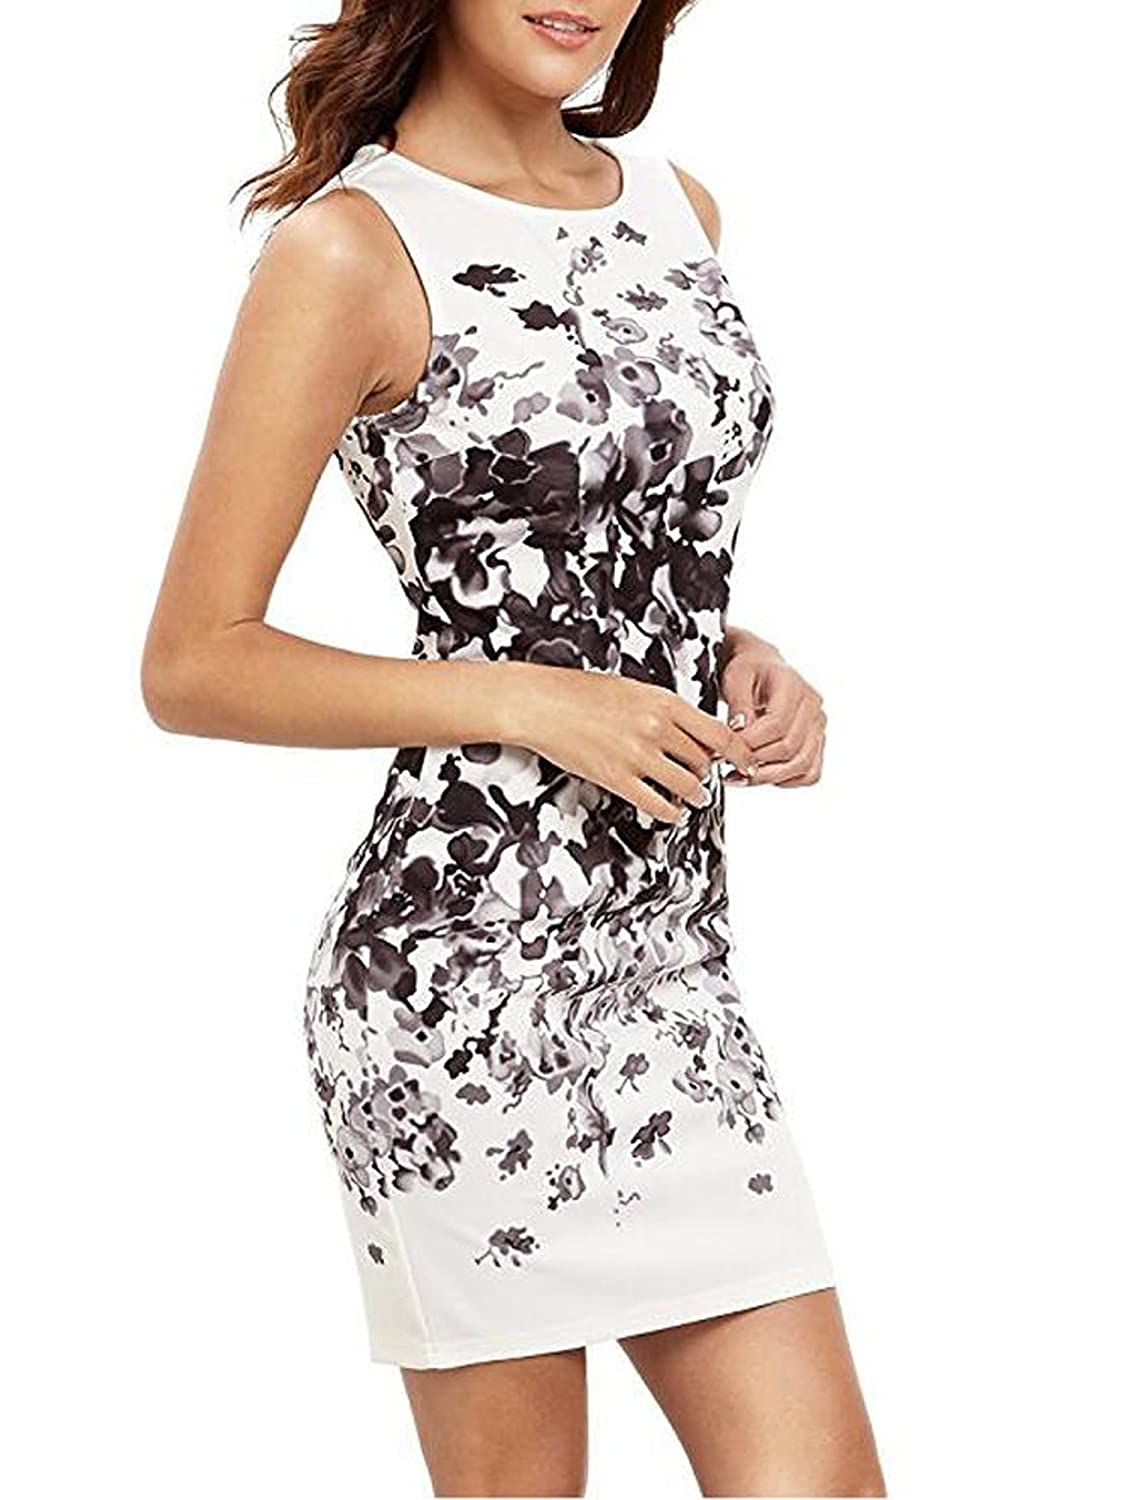 Elevesee Womens Floral Bodycon Cocktail Party Summer Dresses